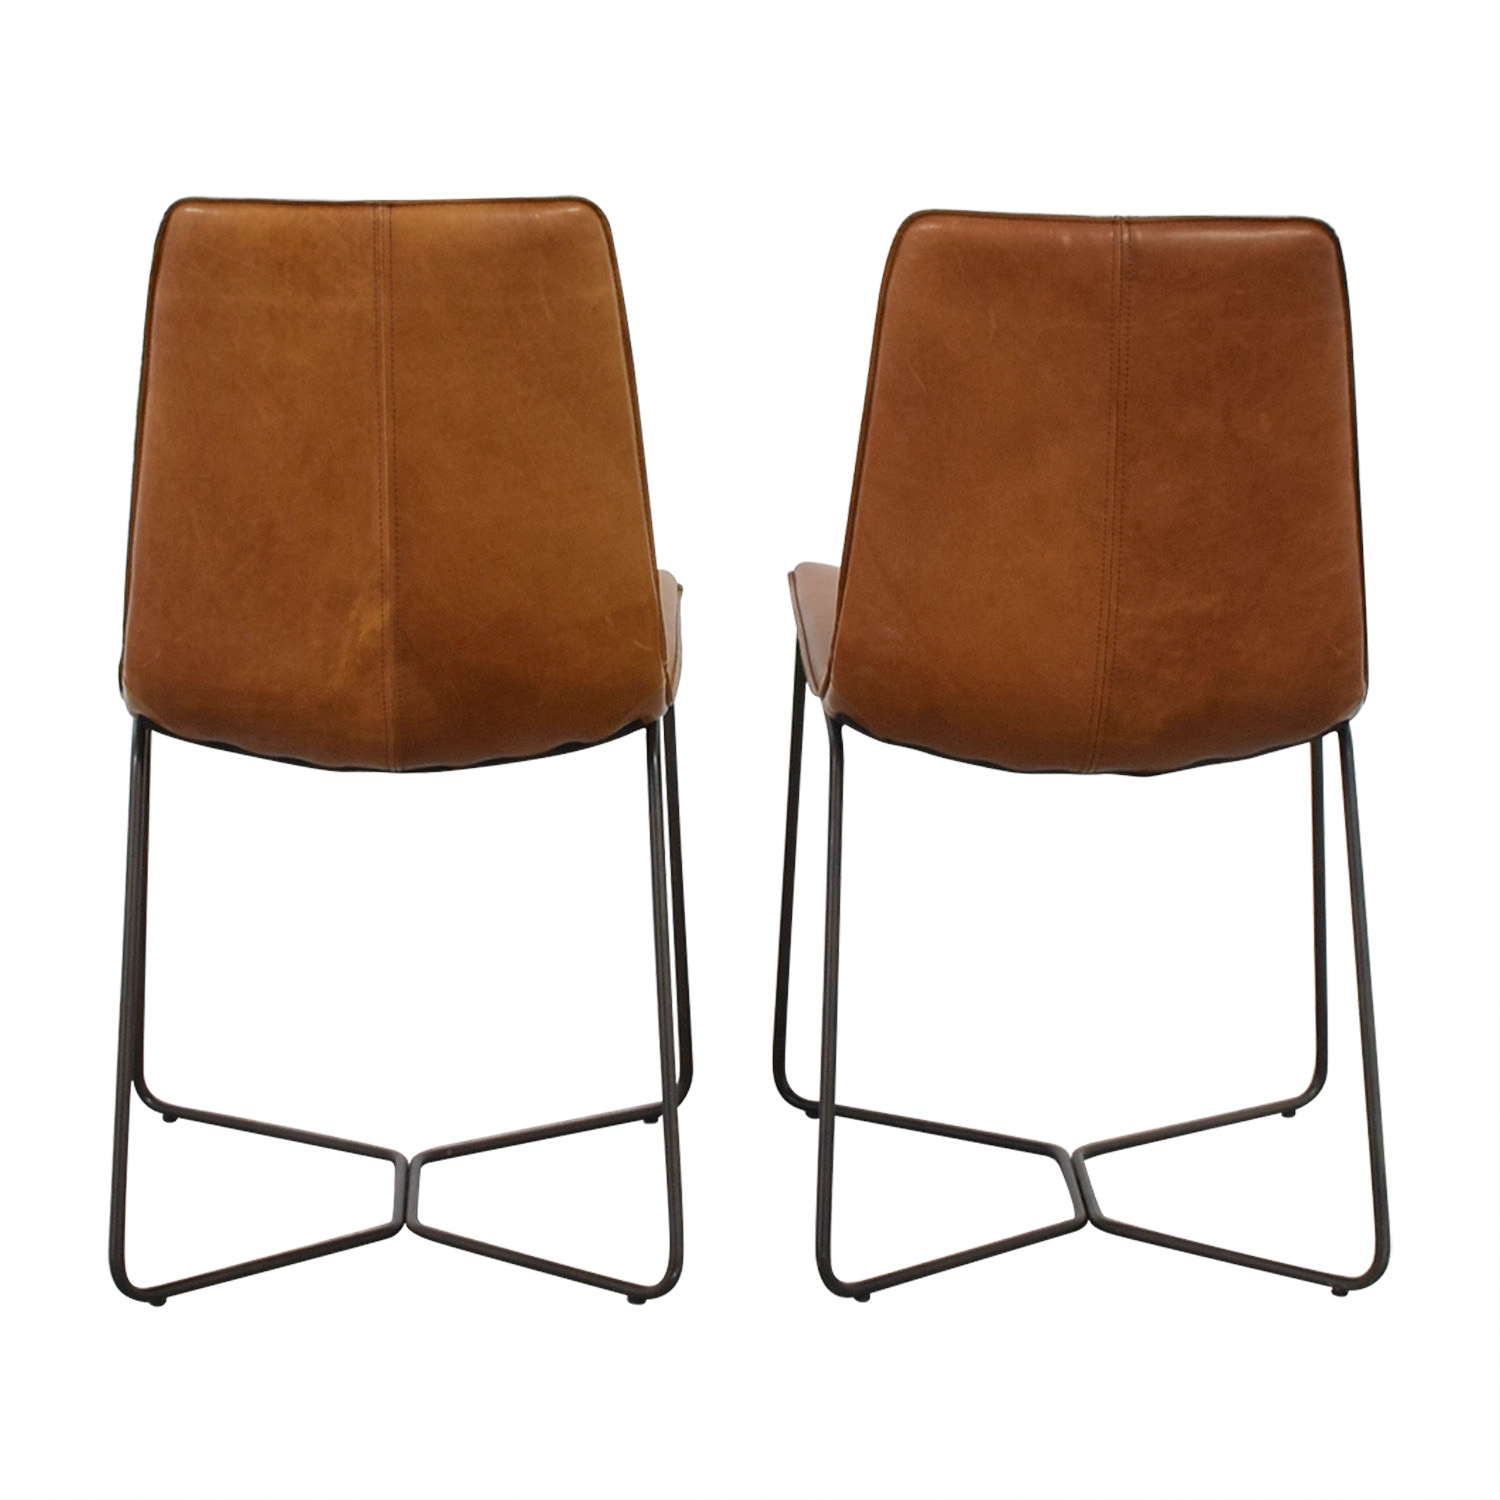 used west elm furniture. Buy West Elm Leather Slope Dining Chairs Online Used Furniture